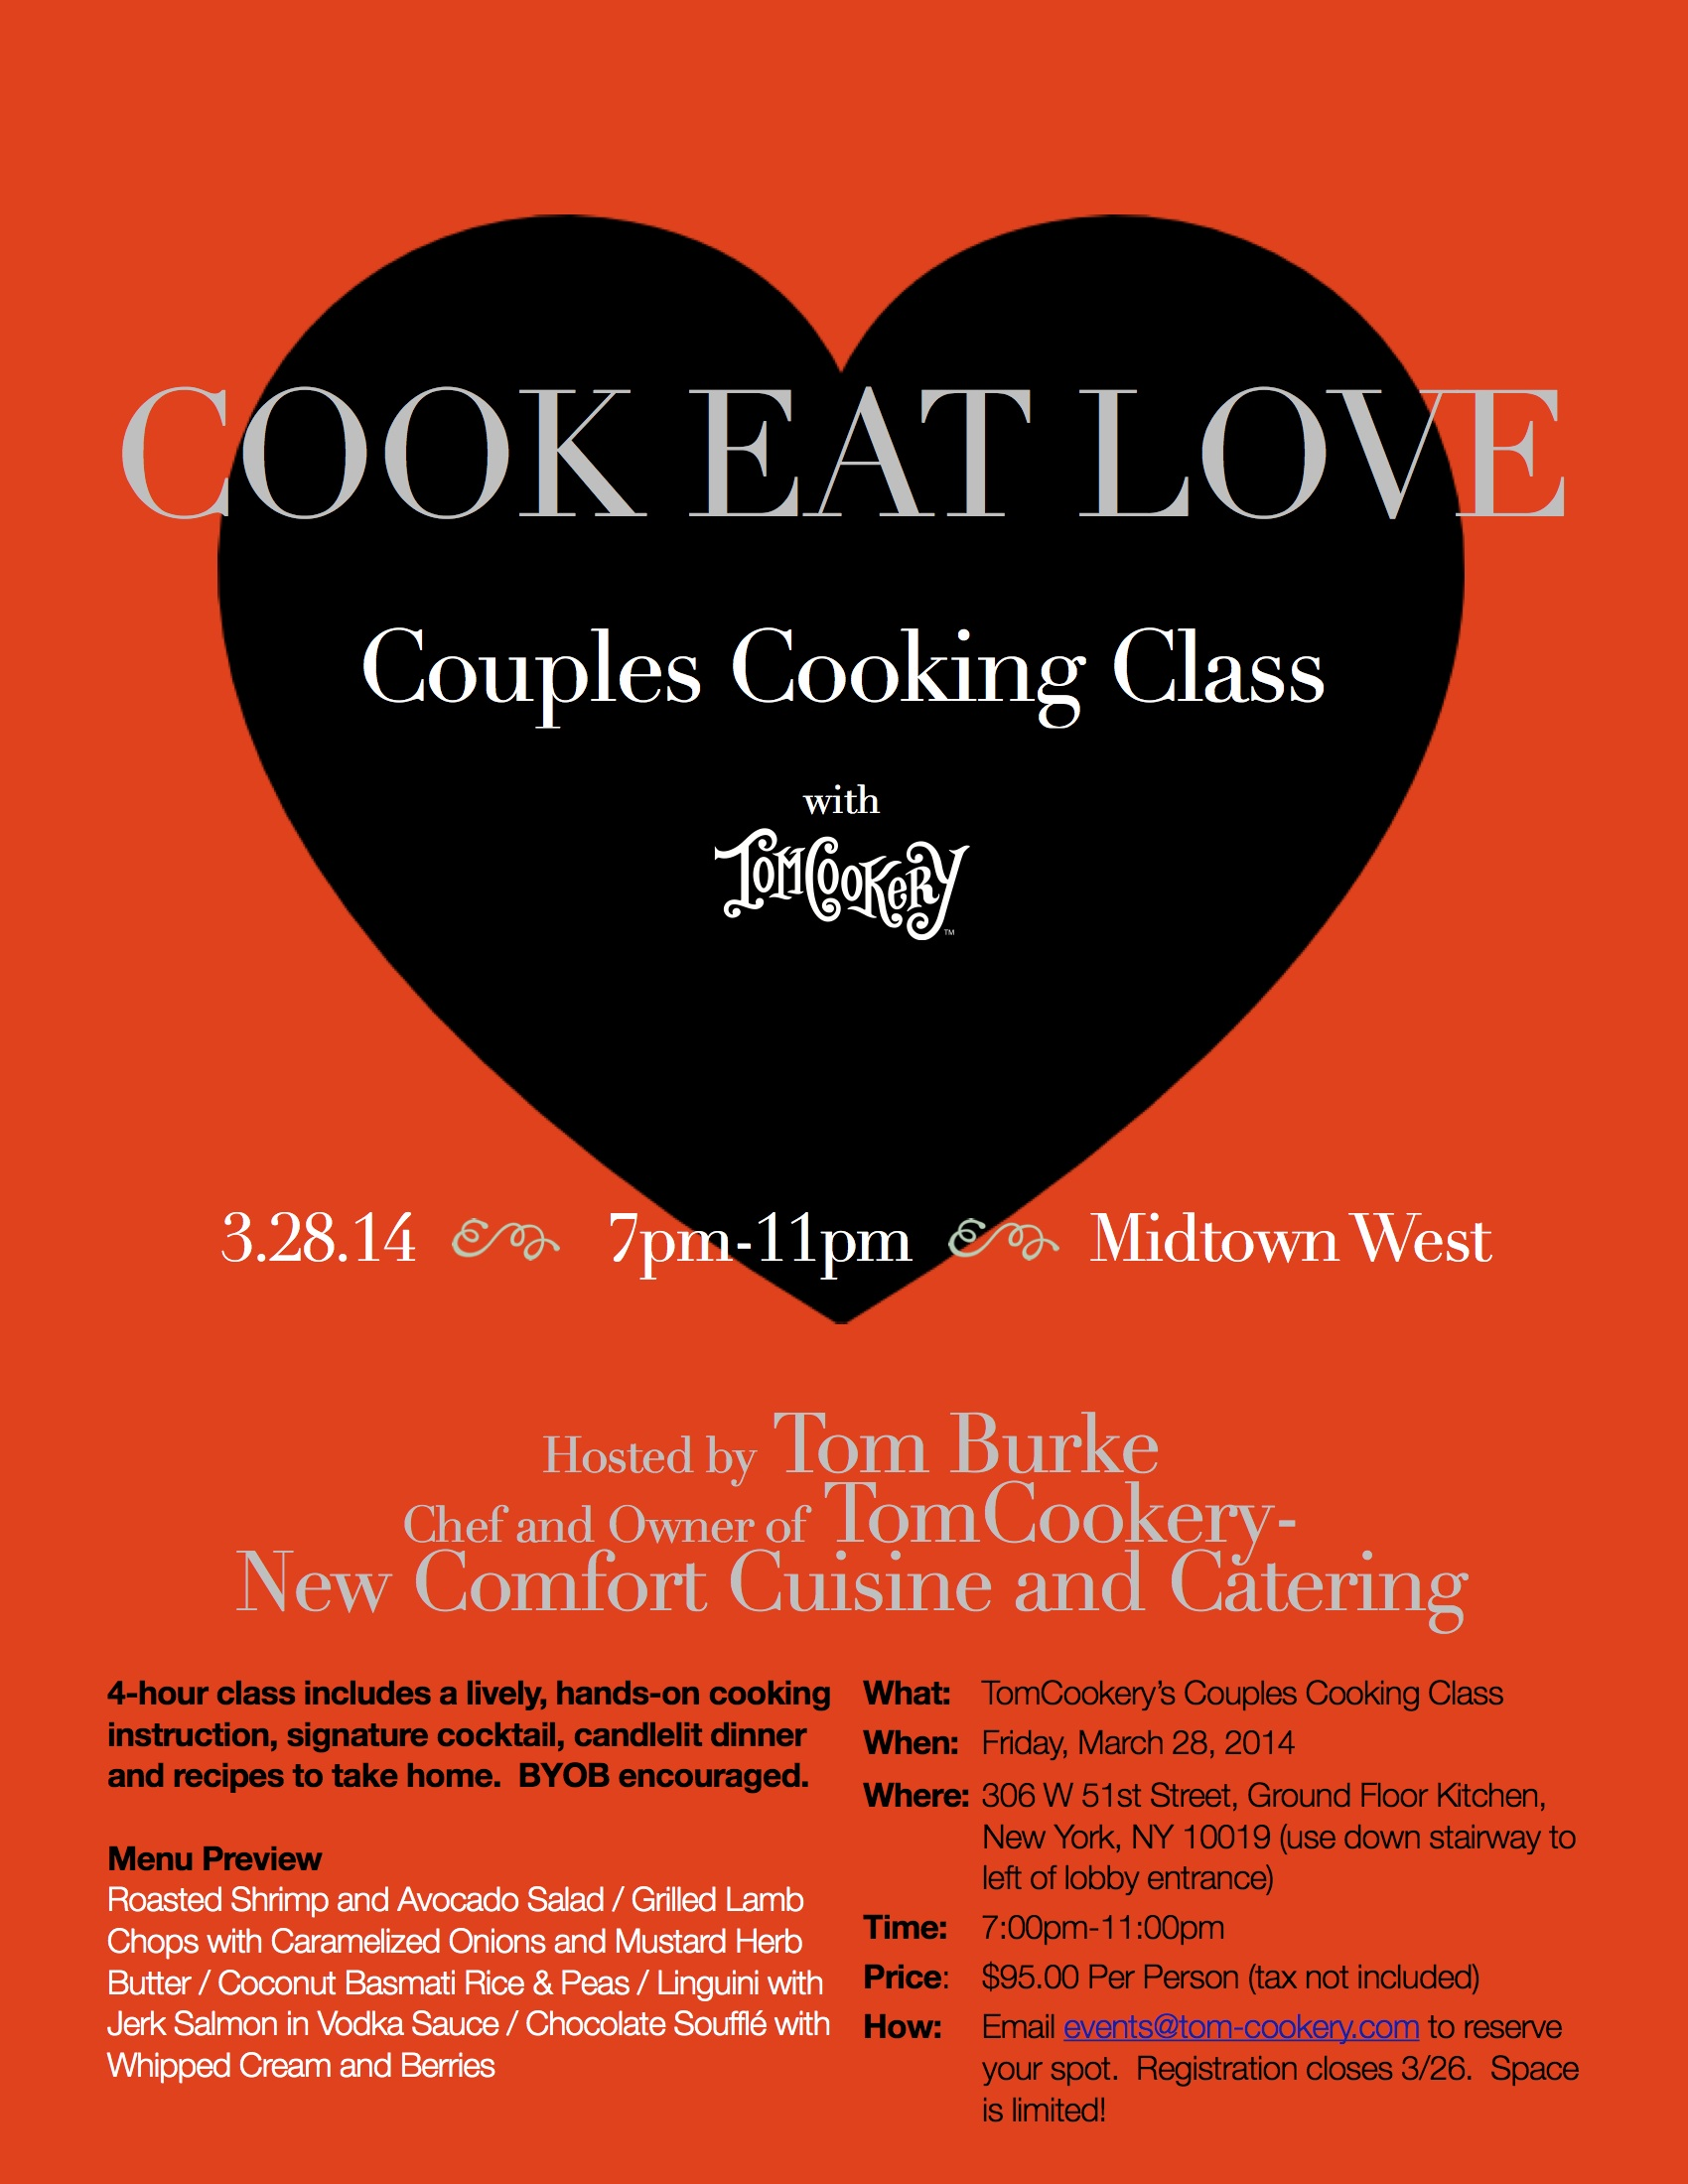 TomCookery COOK EAT LOVE Class Flyer 3:28 JPEG